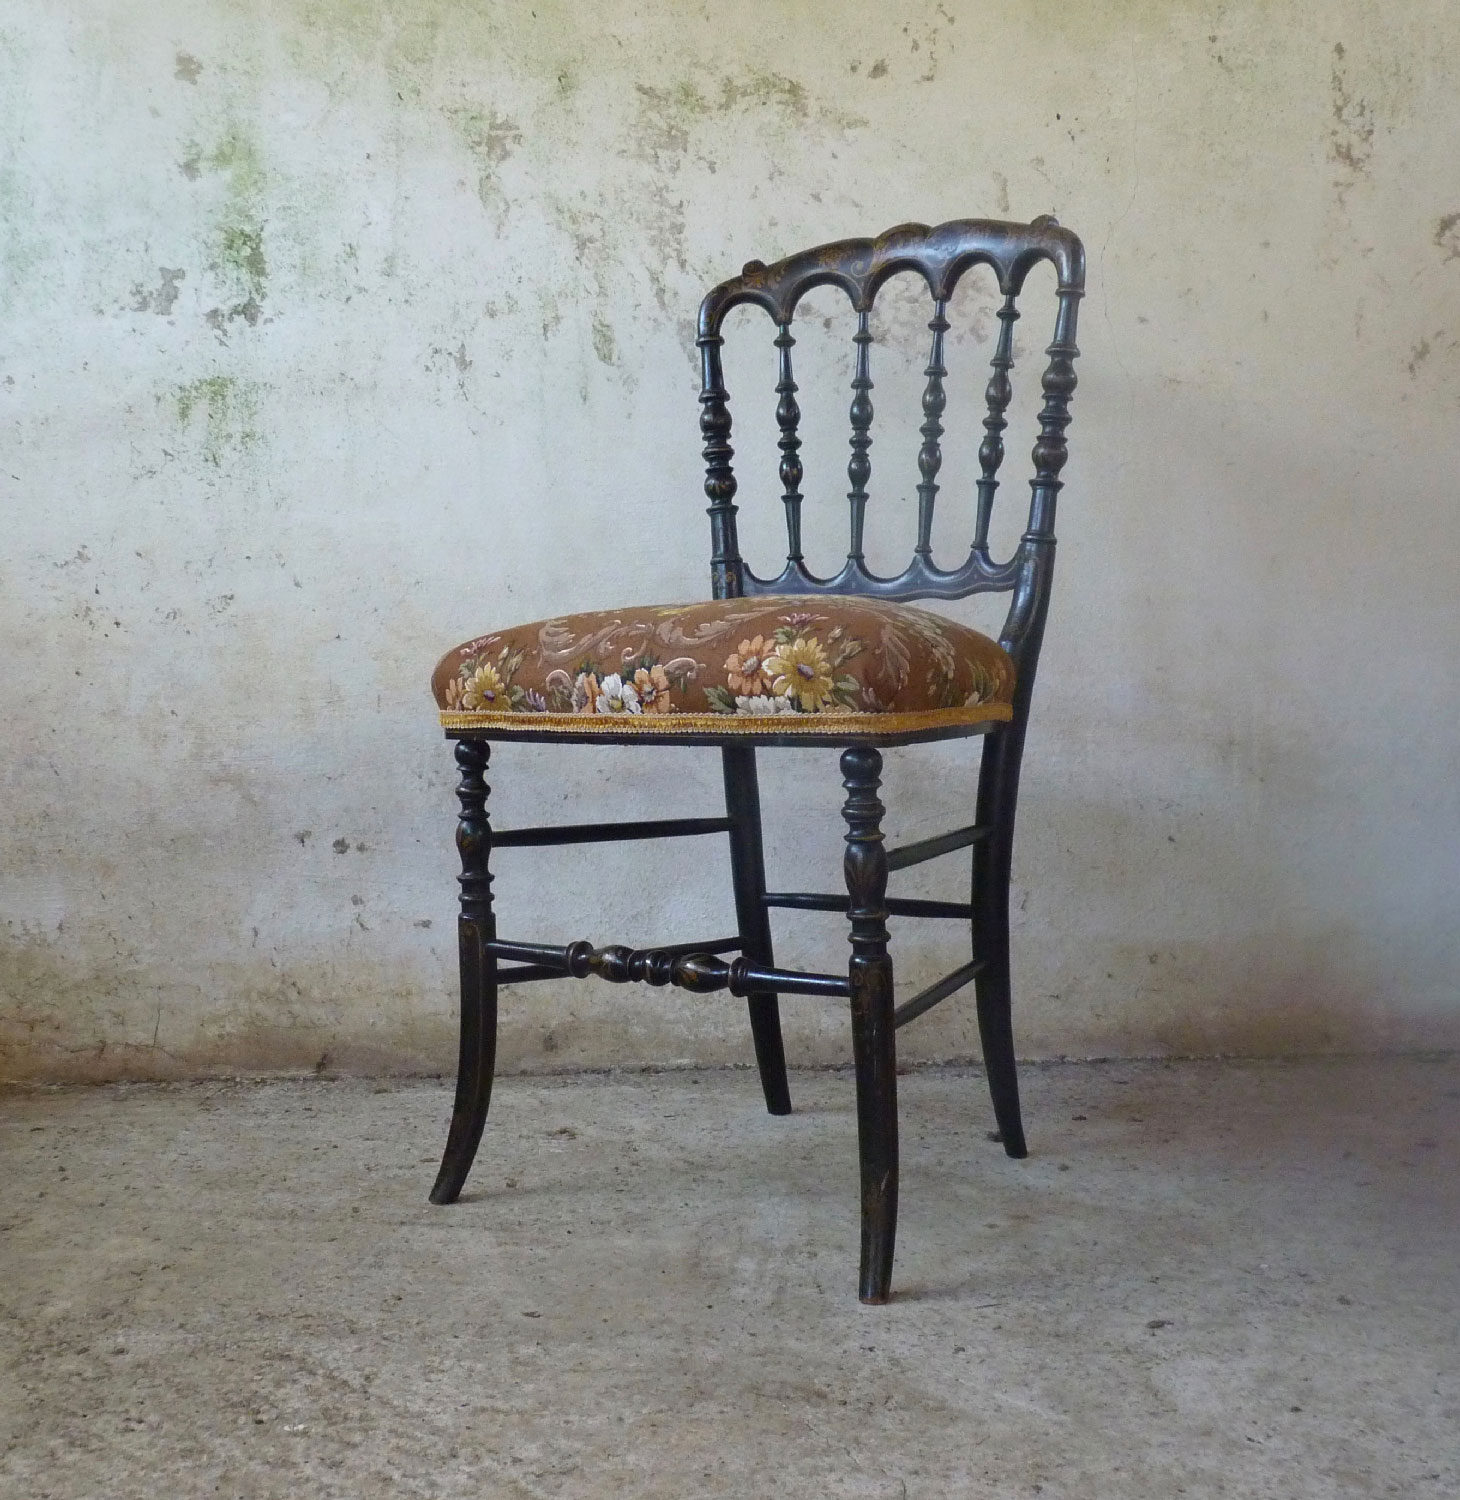 Decorative French occasional chair